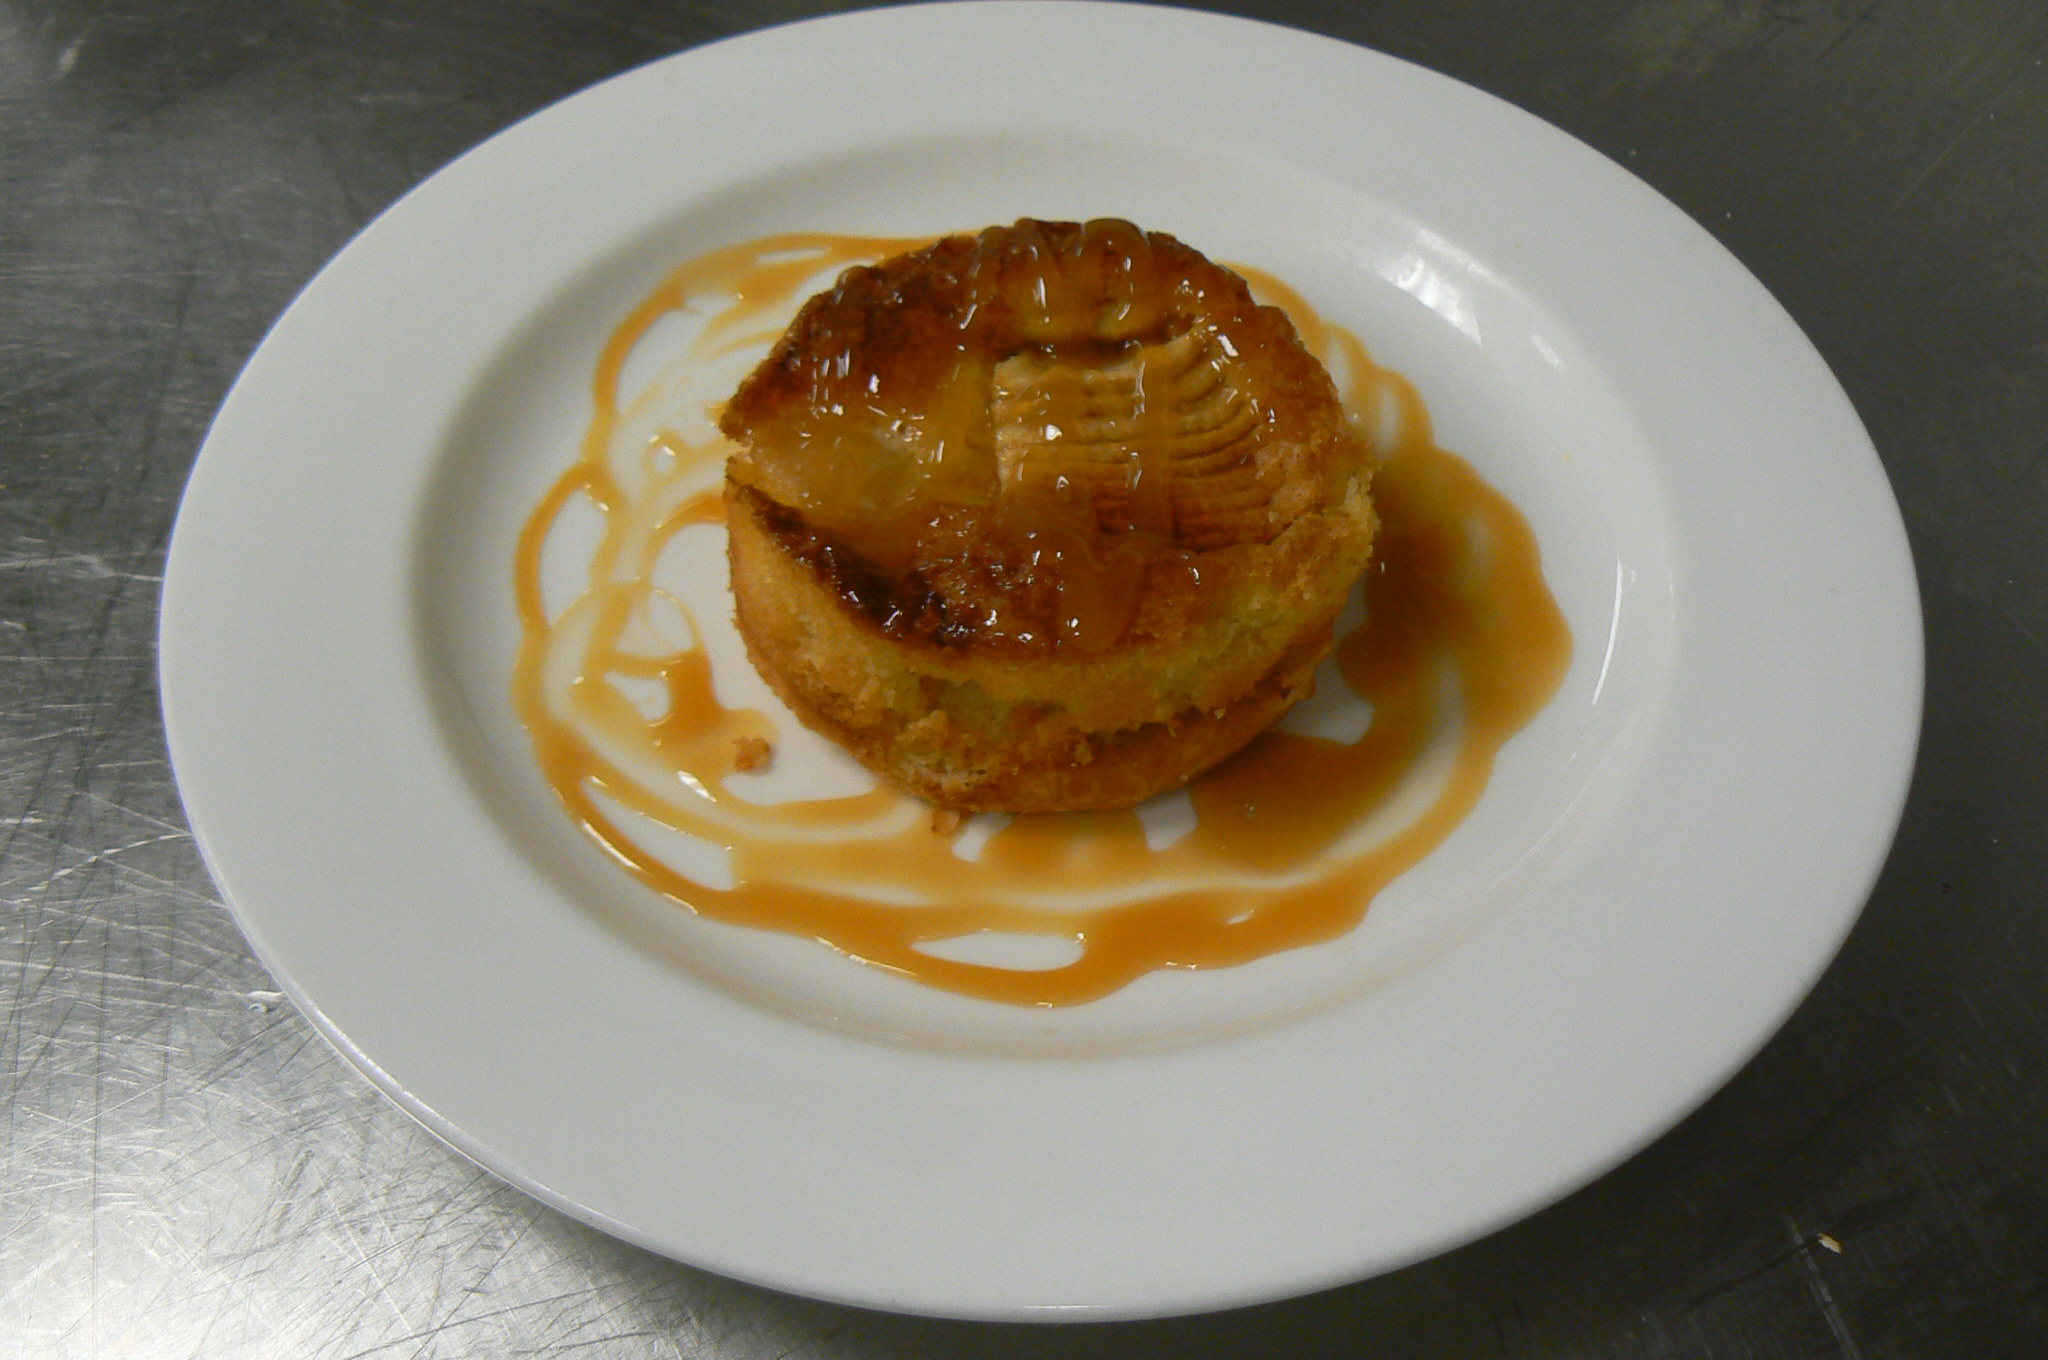 Apple and Pear Tart picture